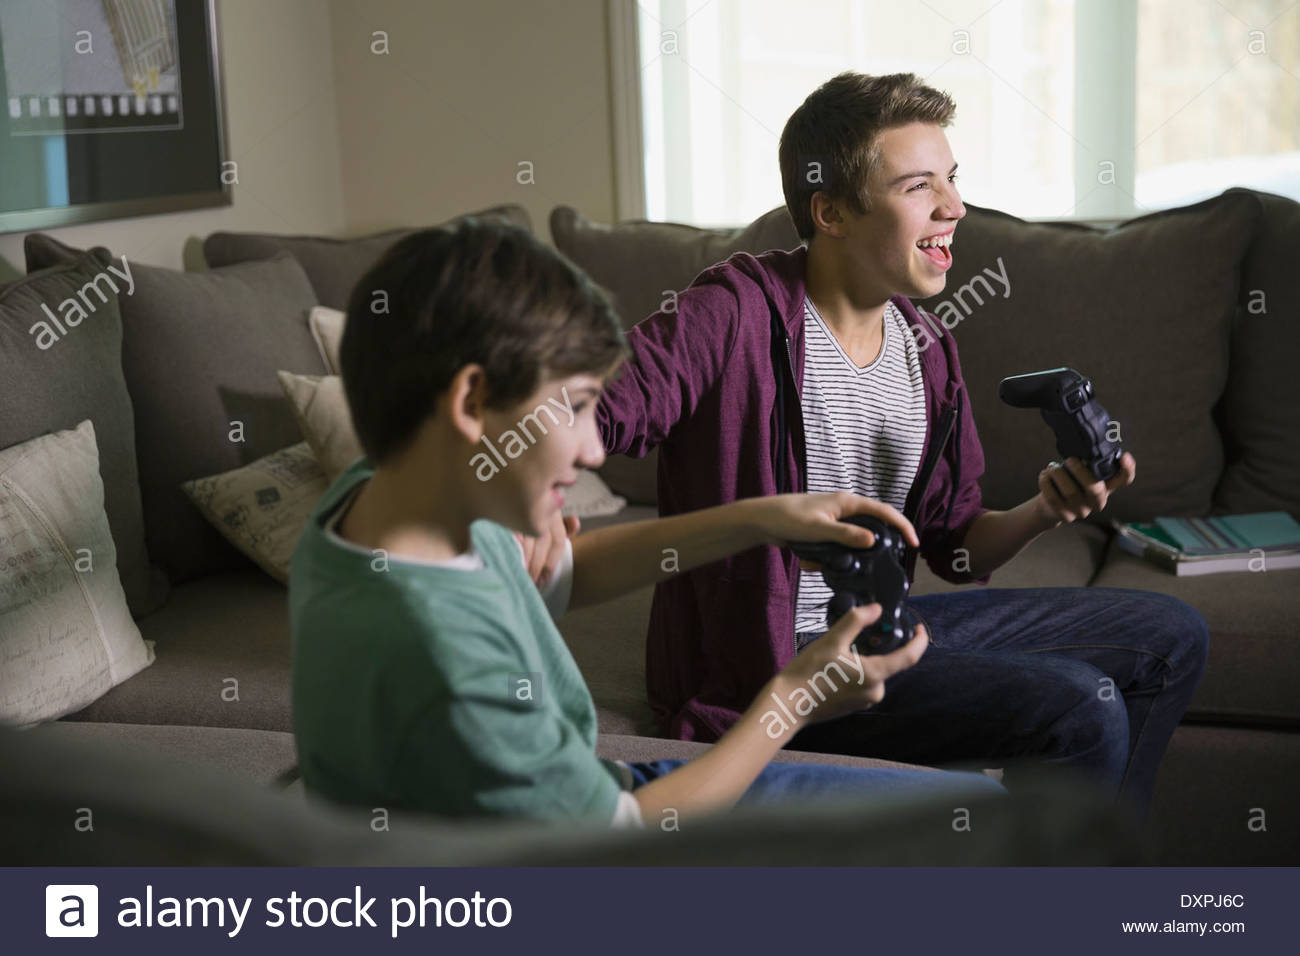 Excited brothers playing video games on sofa - Stock Image